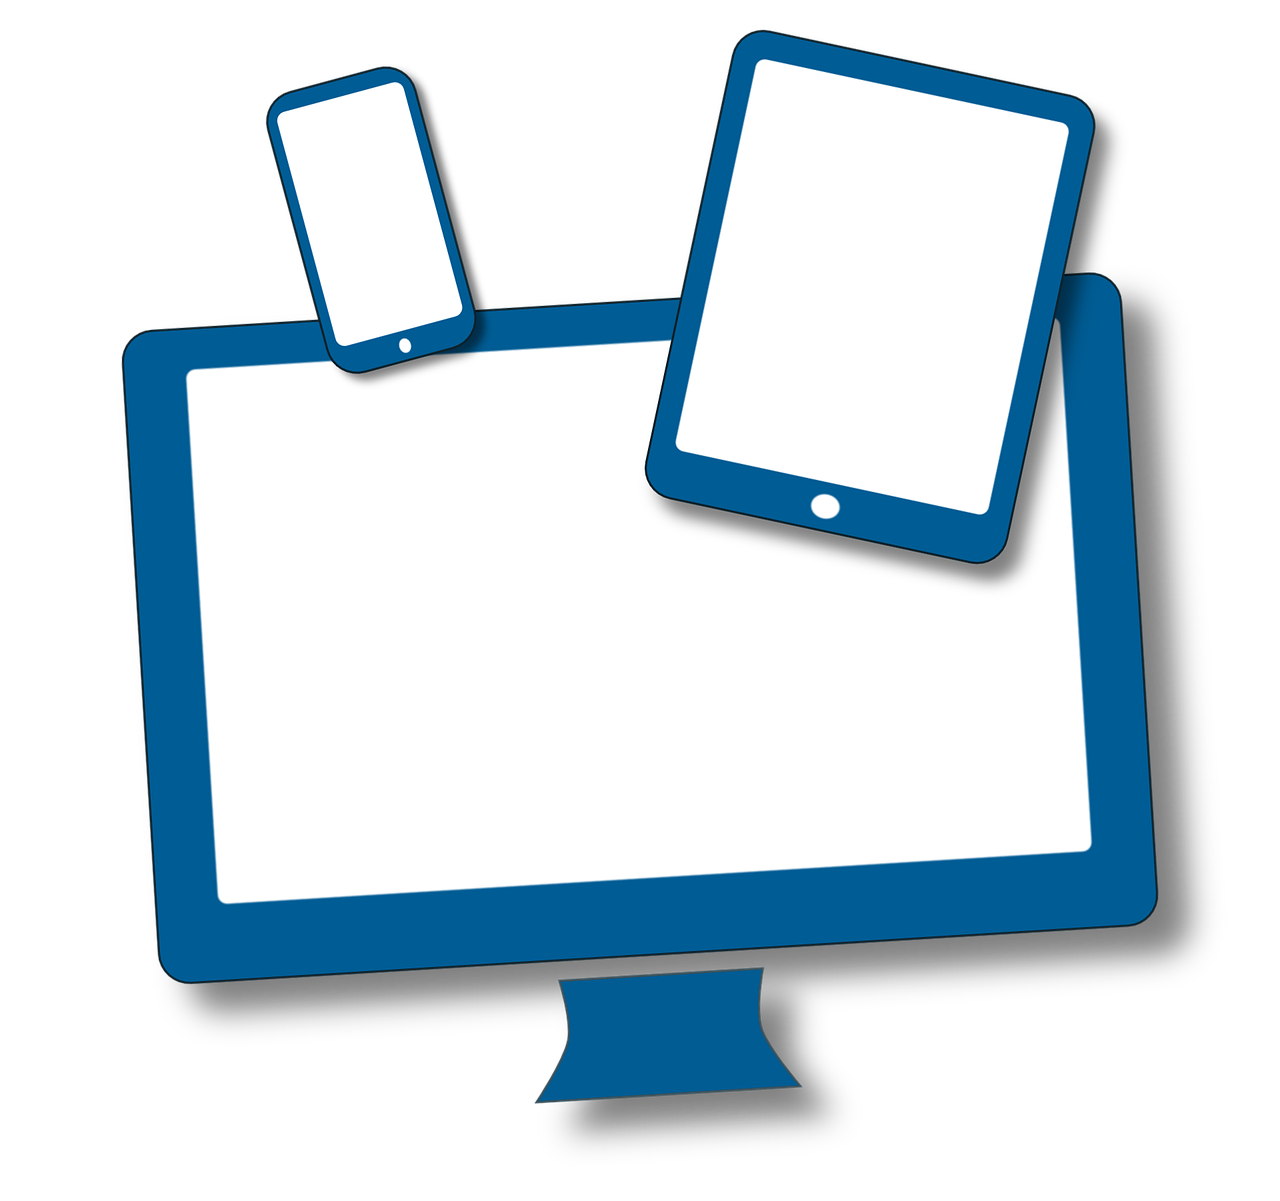 clip art of desktop, laptop and mobile device